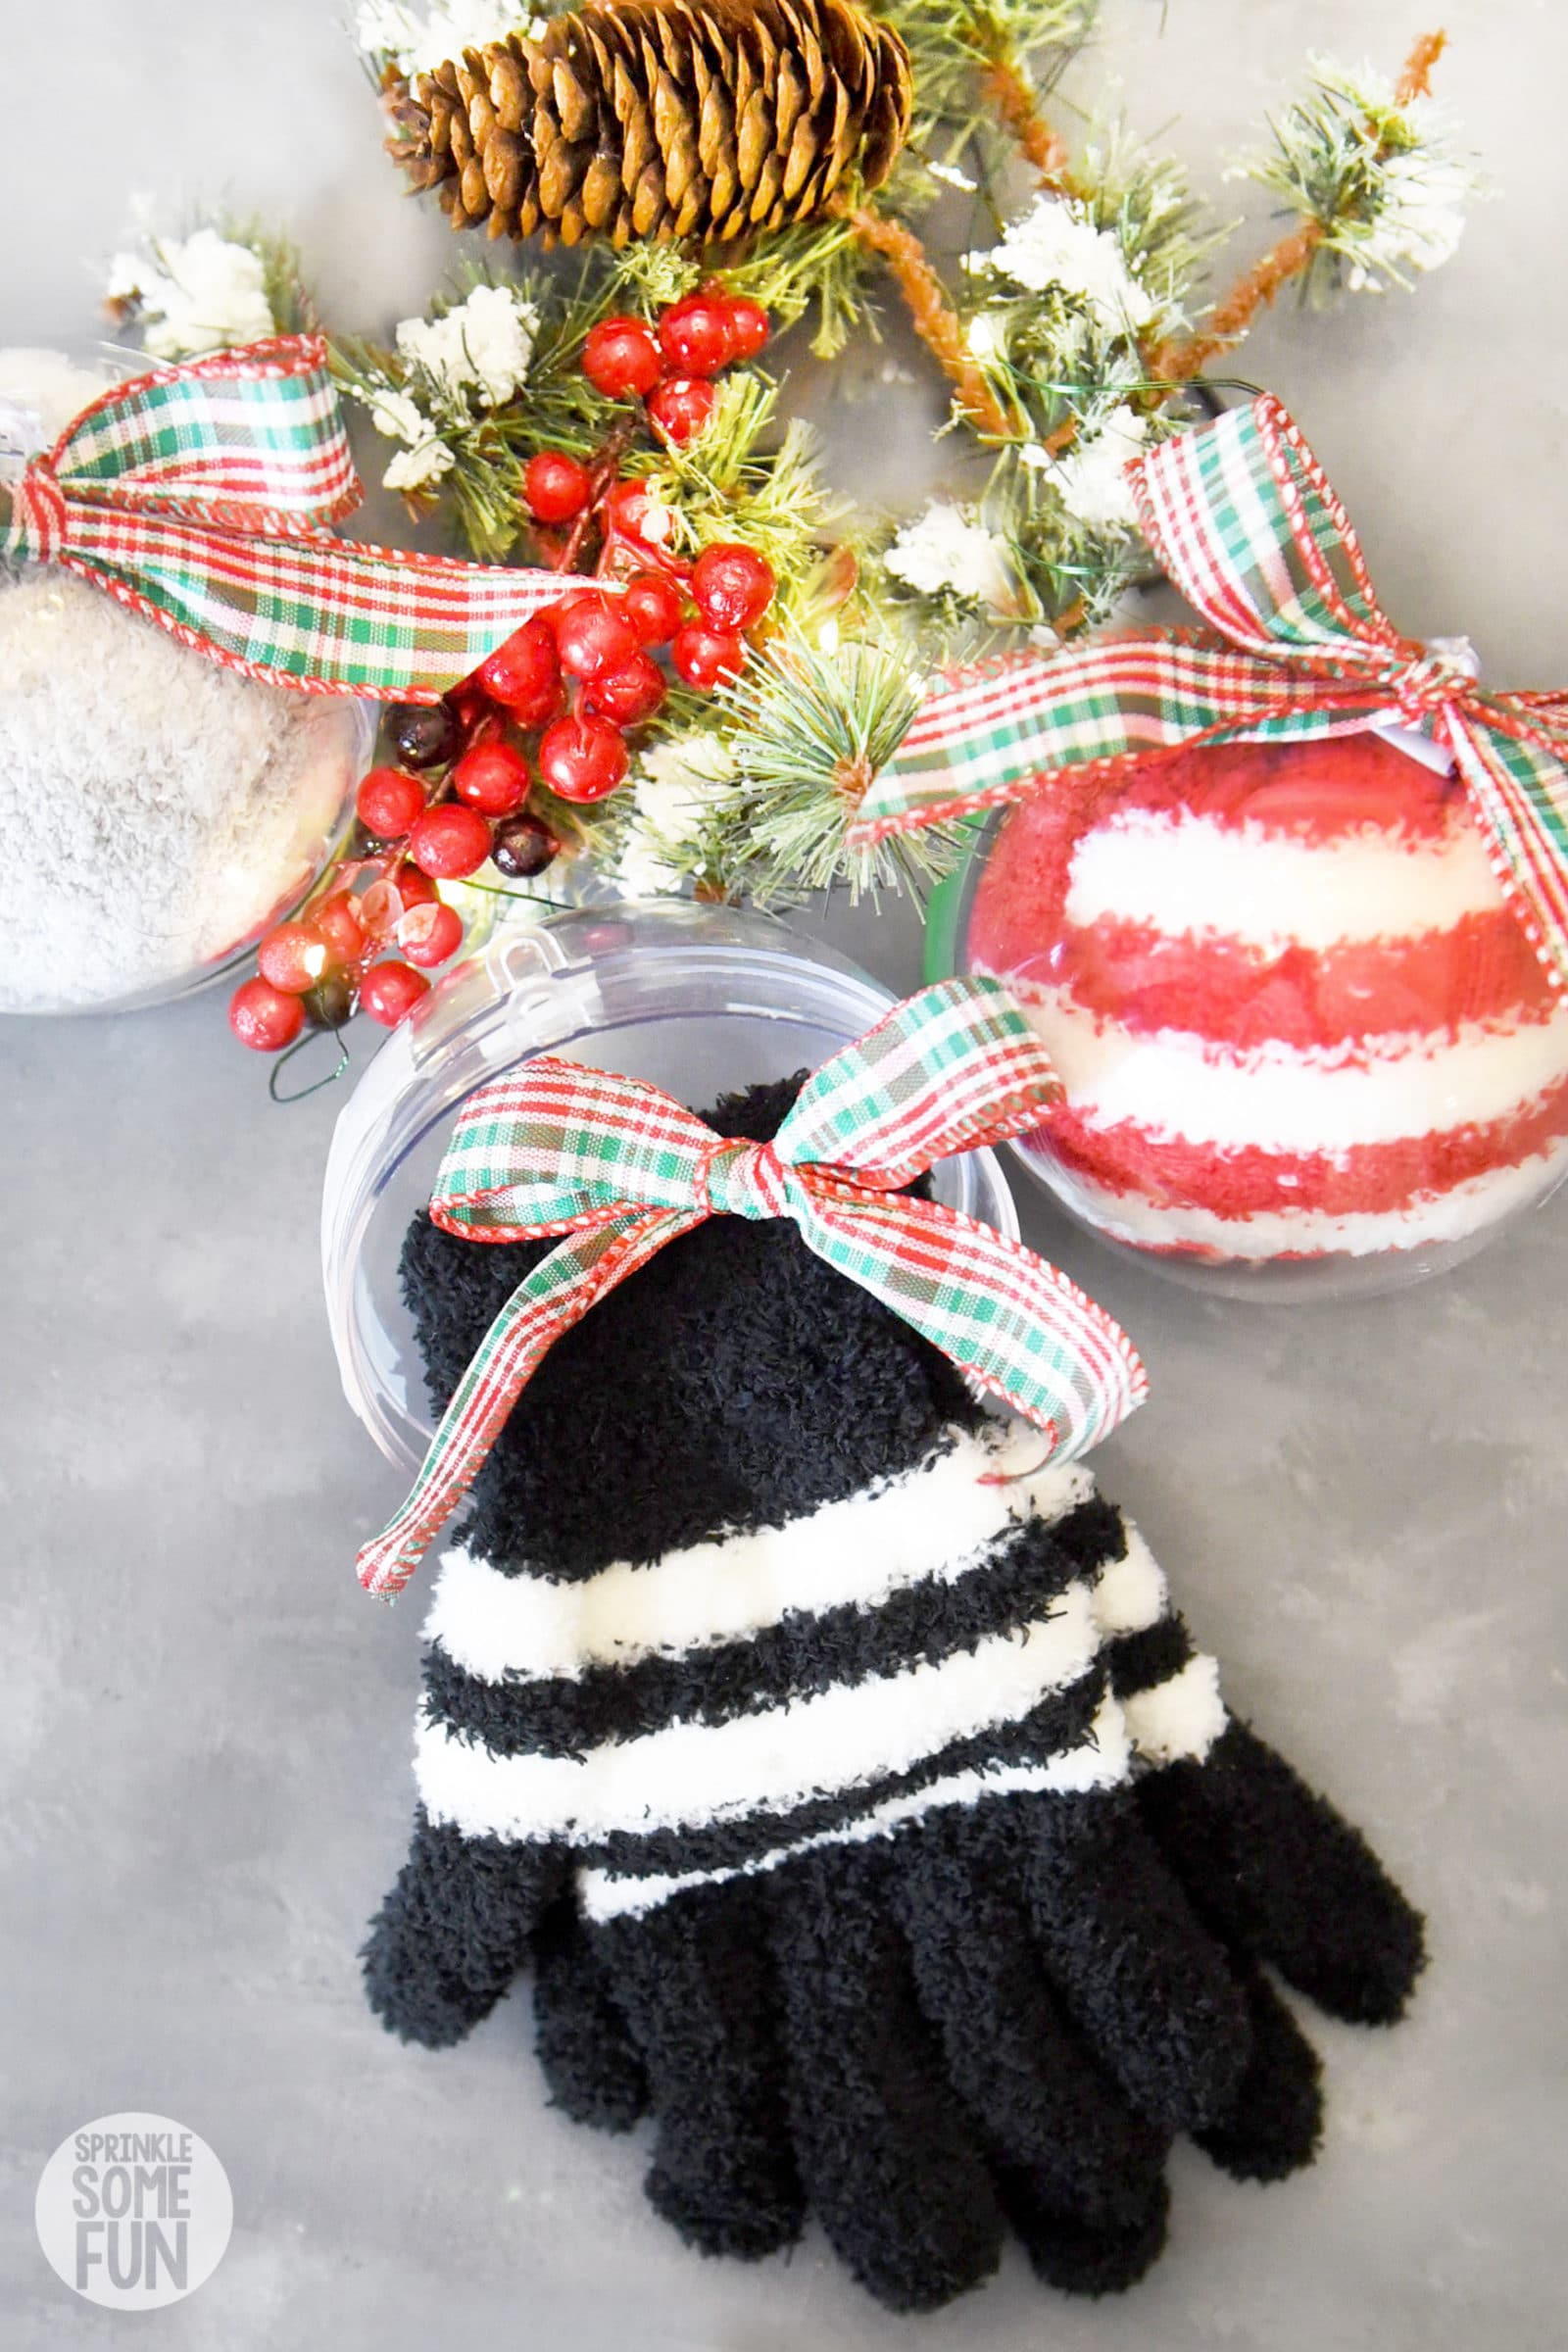 Winter Socks & Gloves Ornaments ⋆ DIY Frugal Christmas Gift ...